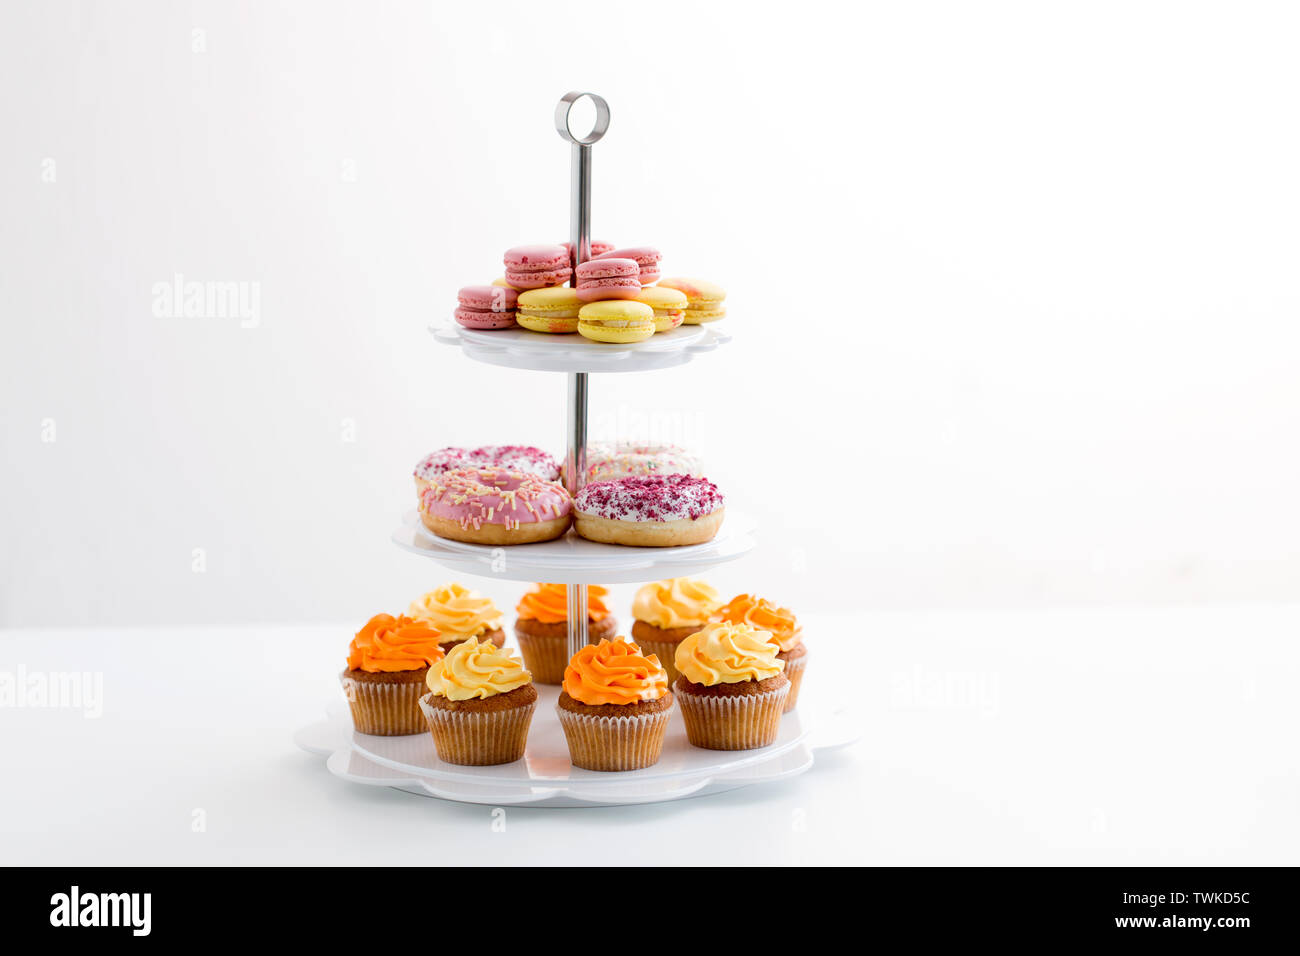 glazed donuts, cupcakes and macarons on stand - Stock Image